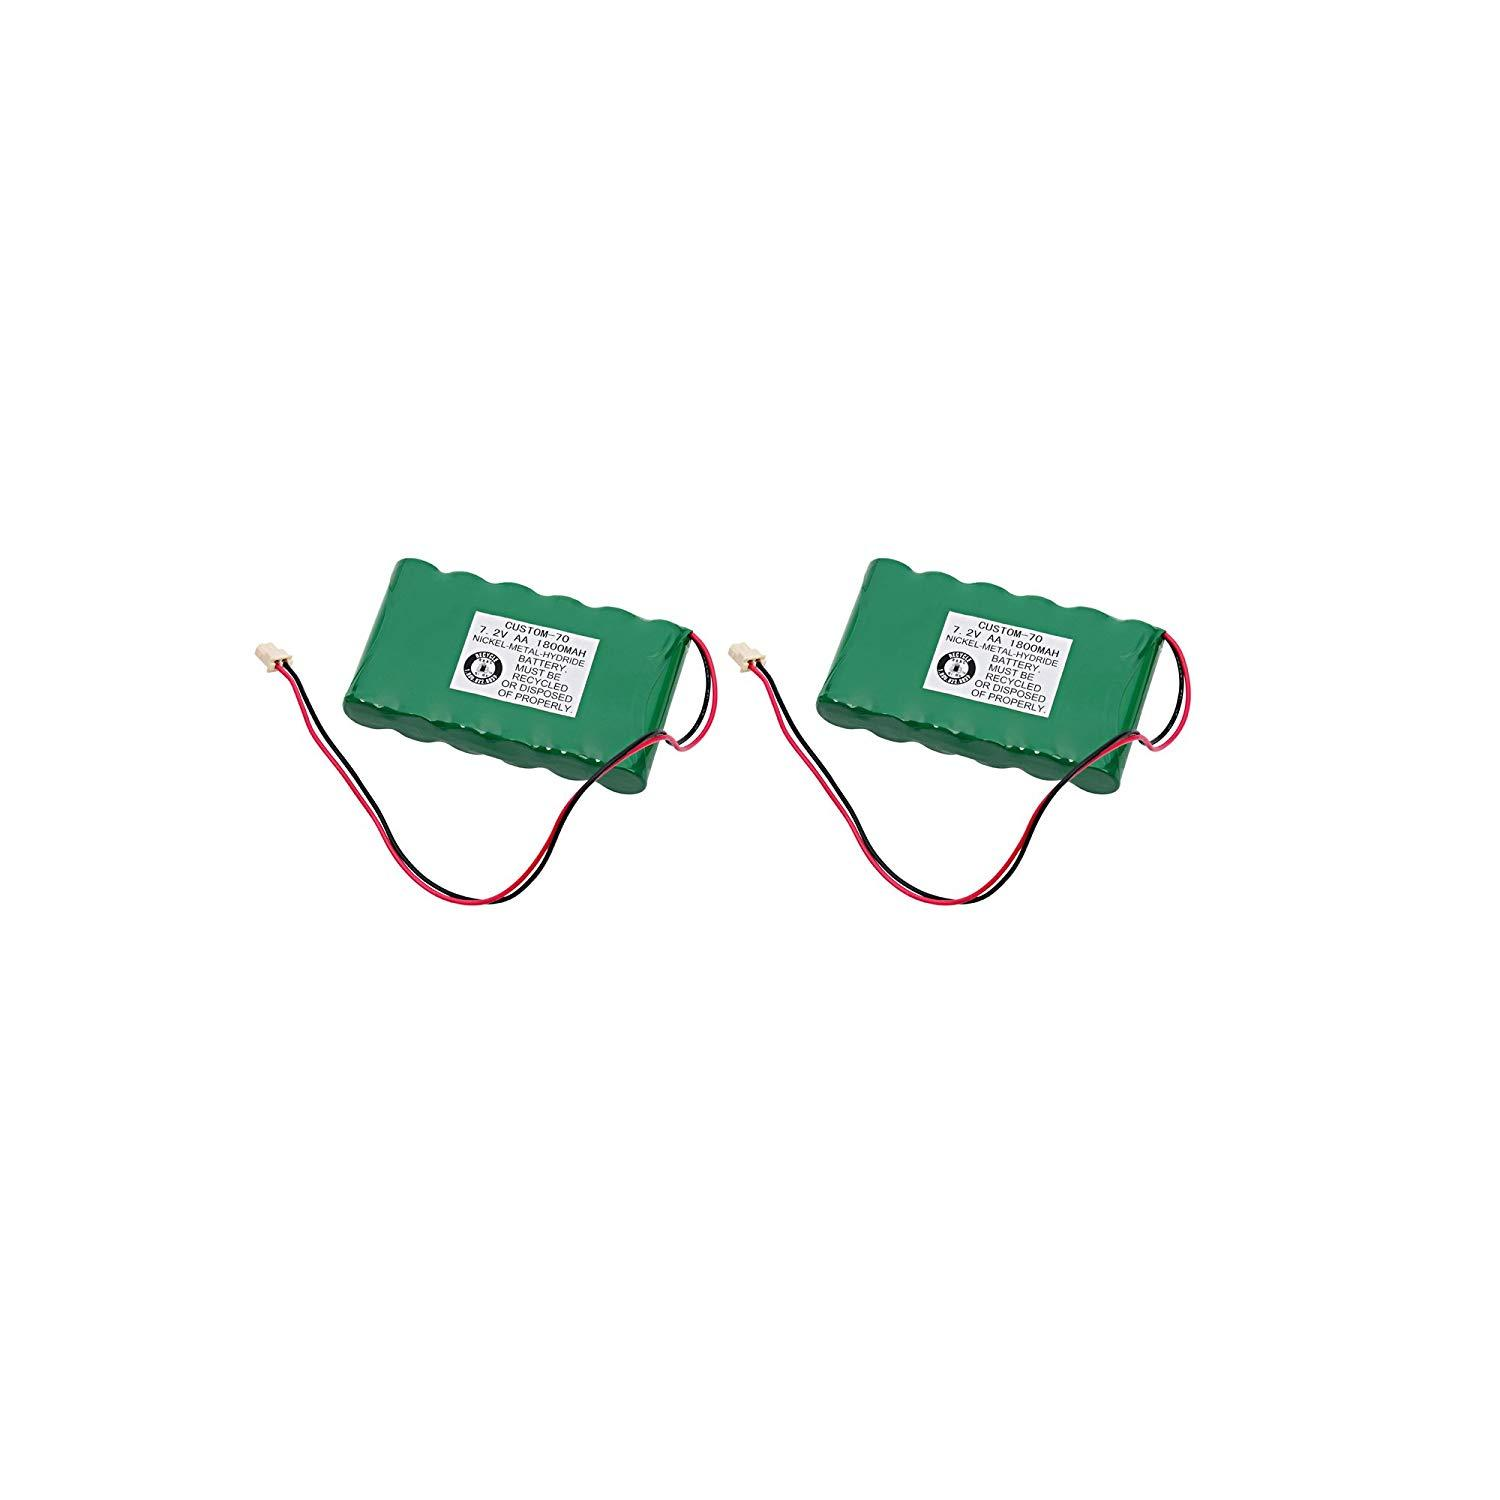 2pc Dantona Replacement Alarm Panel Battery For Honeywell 300-03864-1 and more